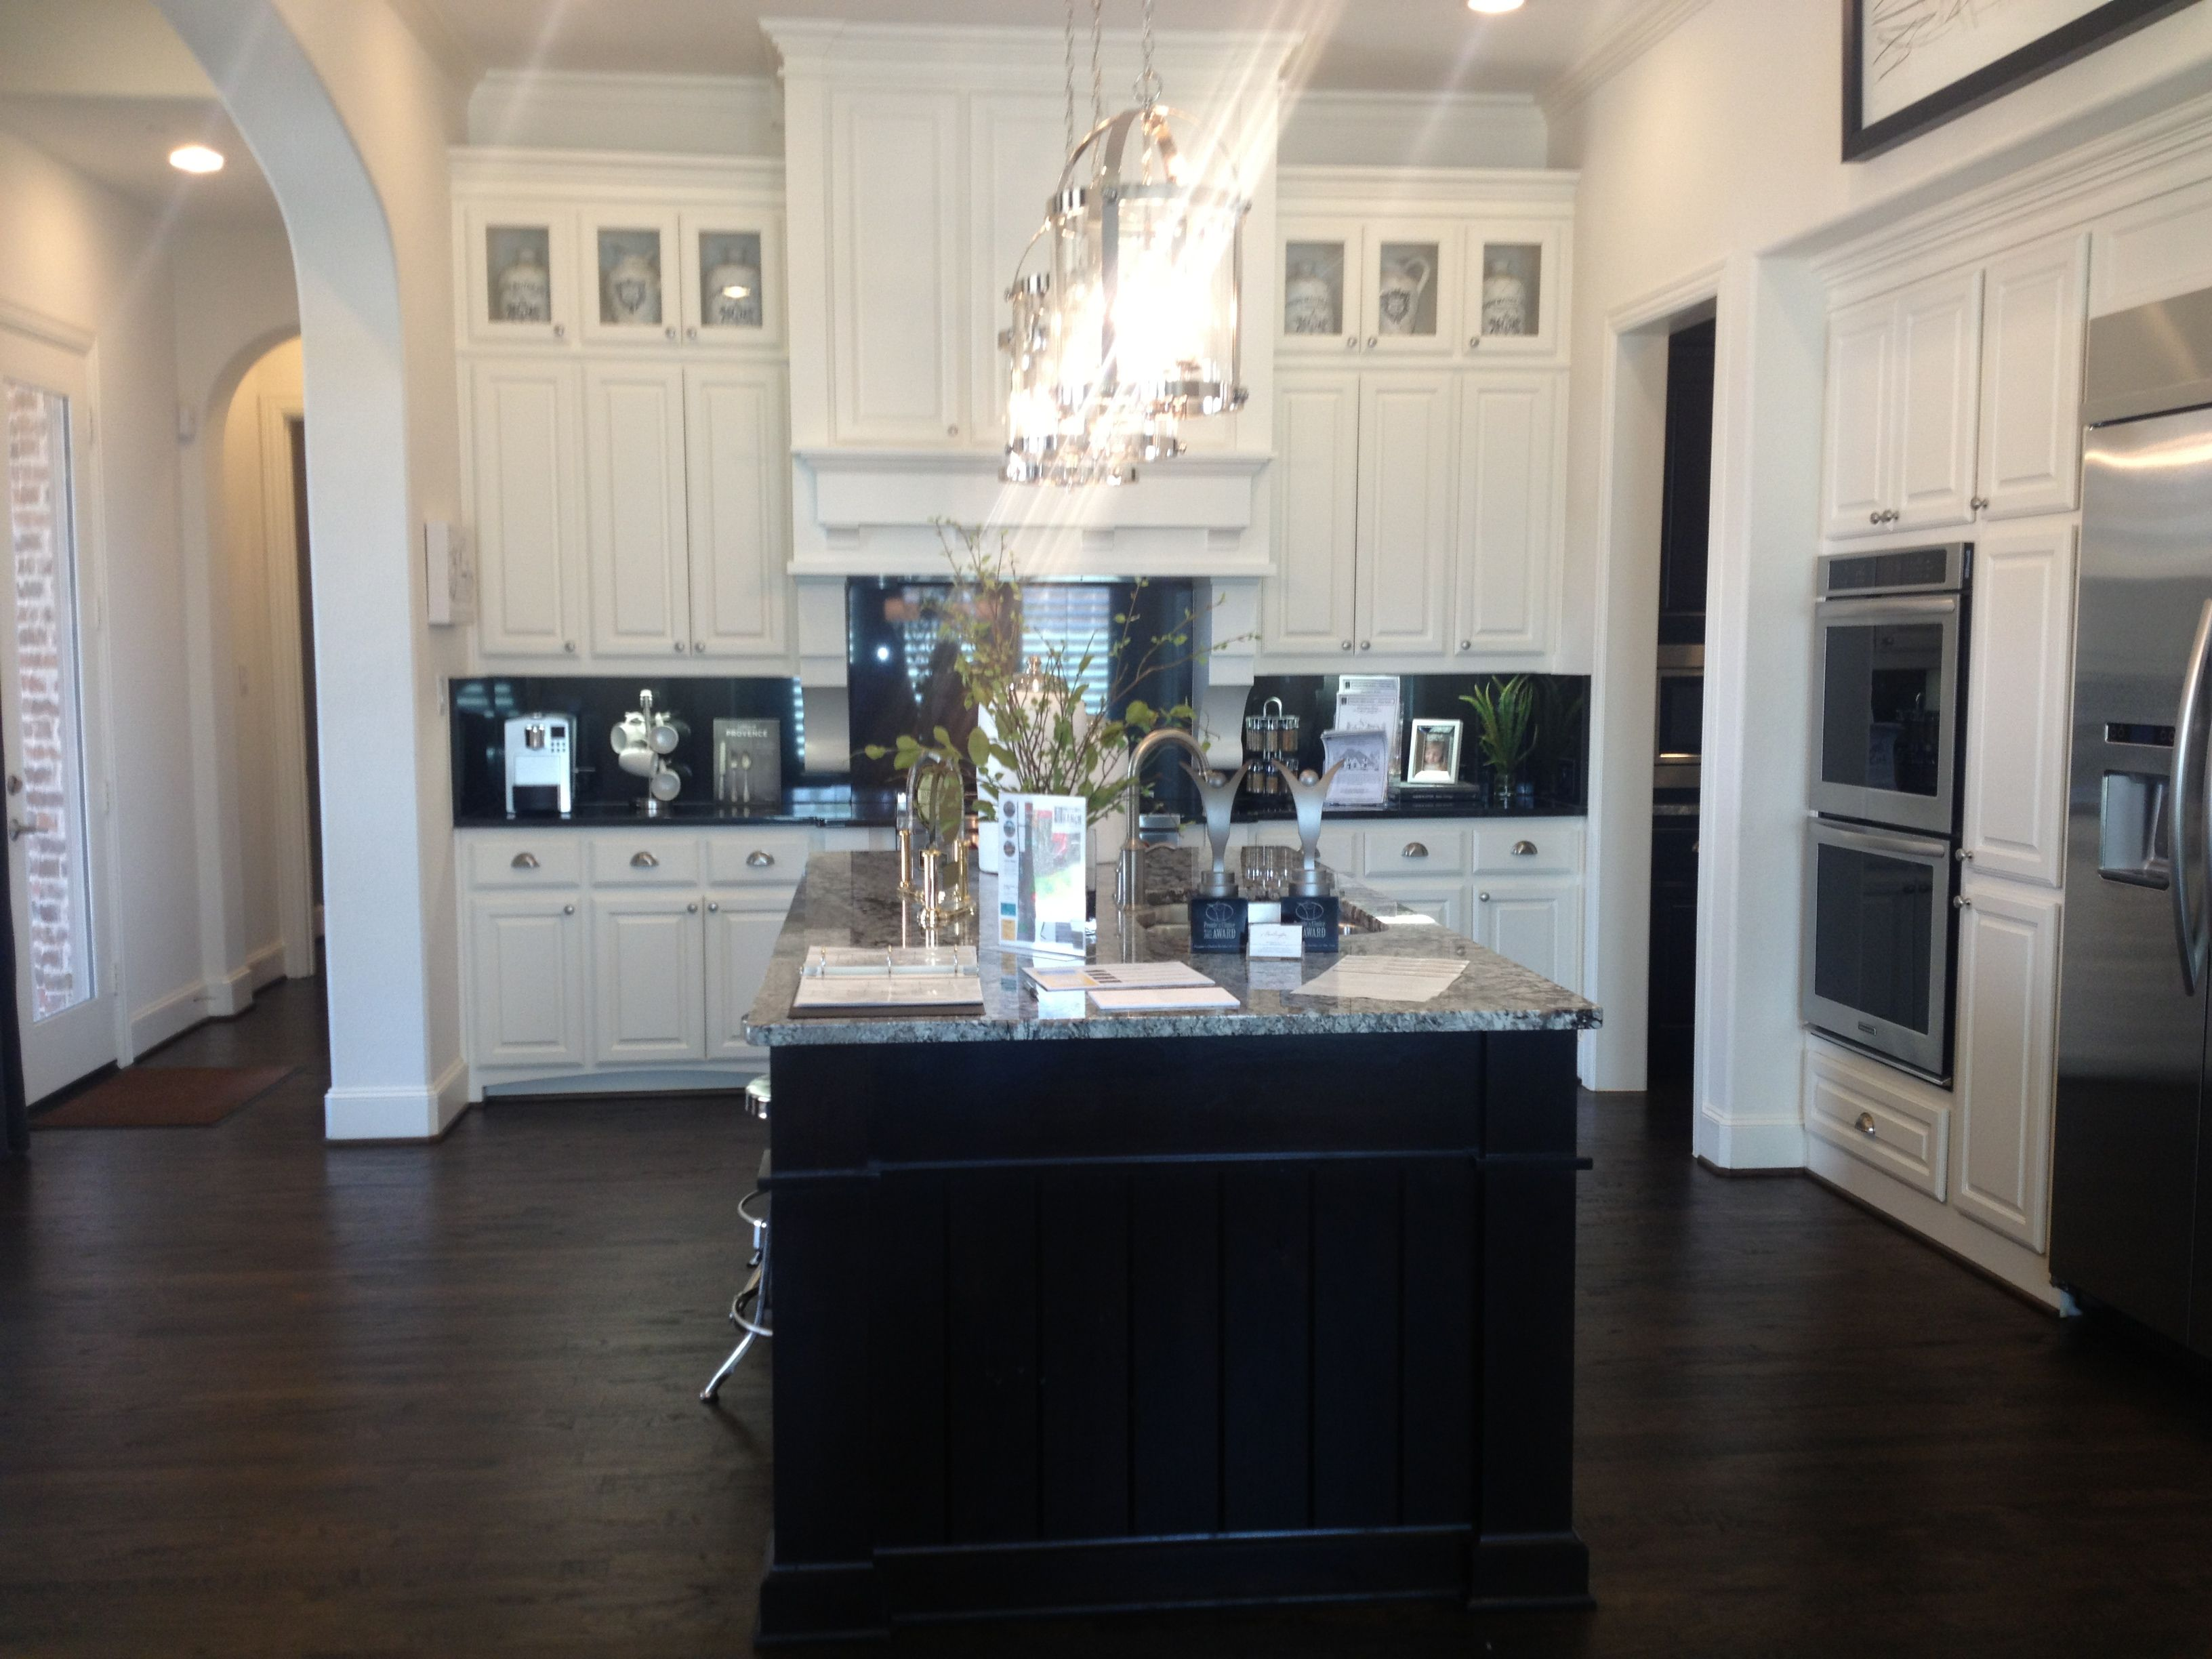 Of White Kitchens With Dark Floors Ideas Gorgeous Black And White Kitchen Design Dark Wood Laminate